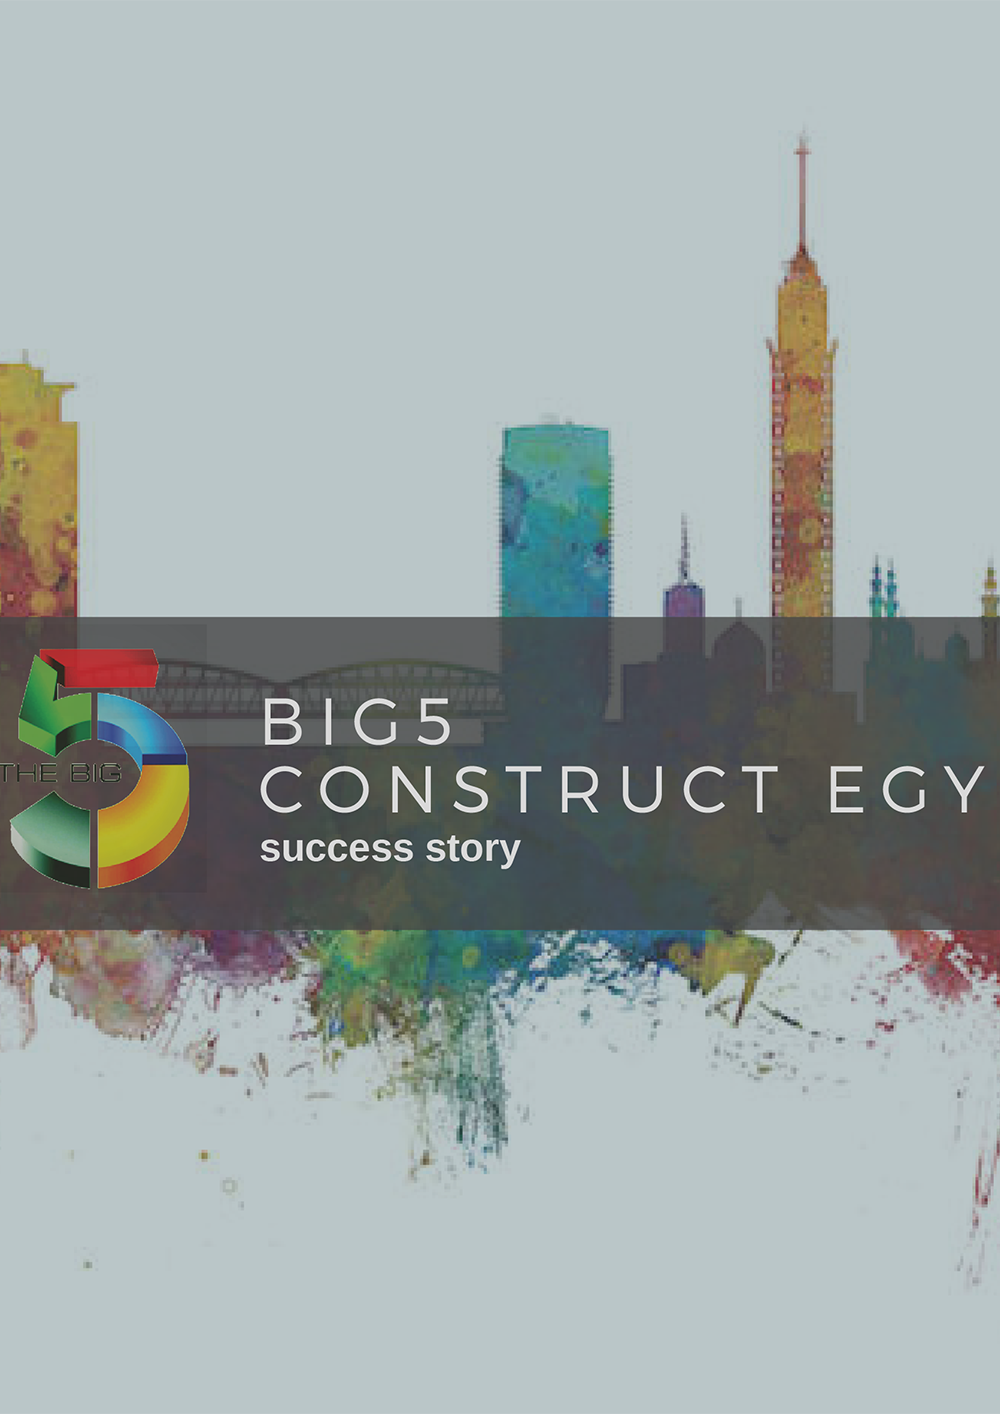 The Big 5 Egypt